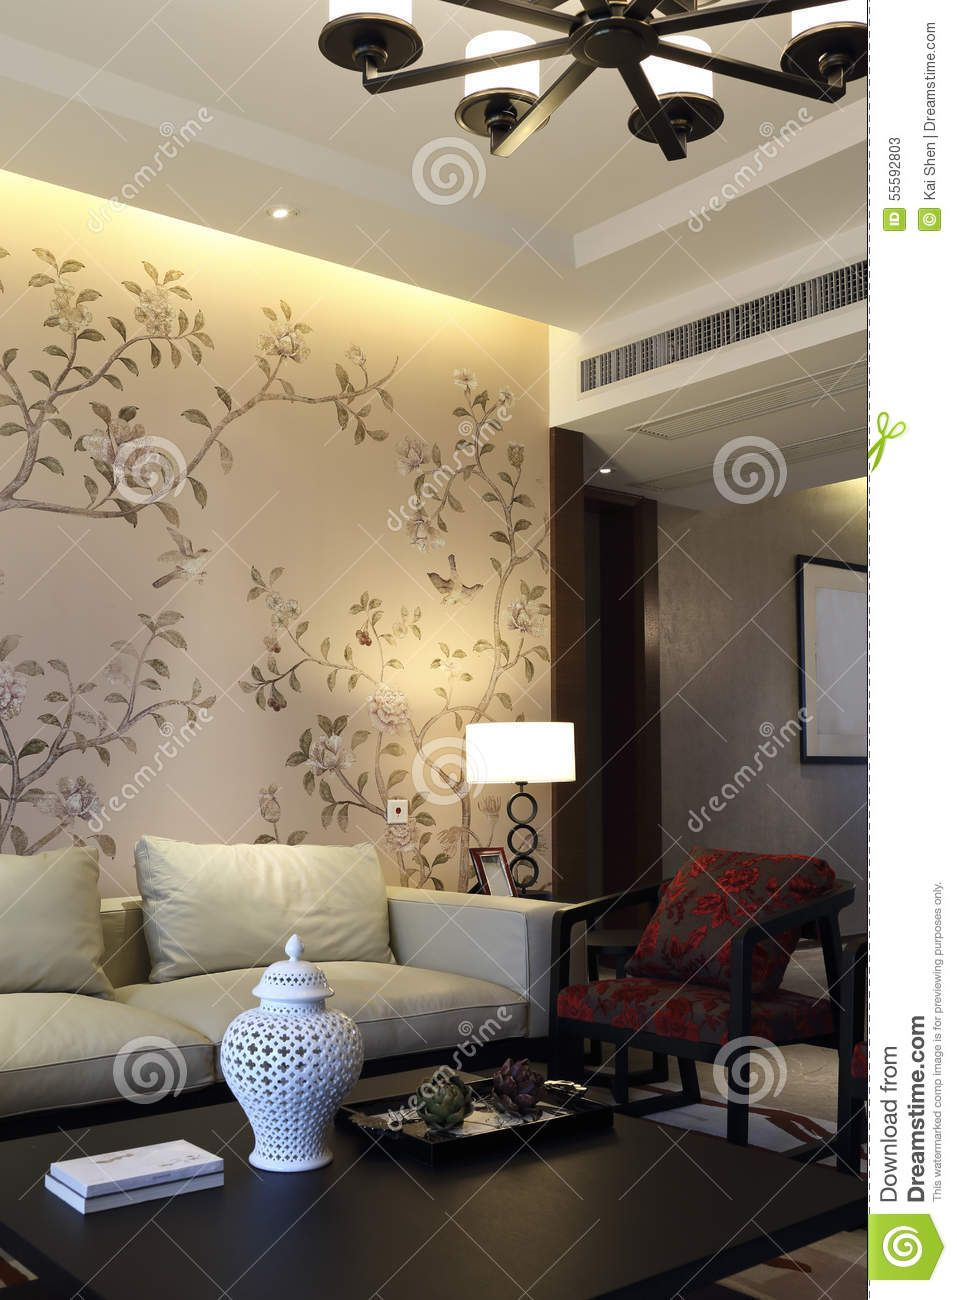 39 Fabulous Apartment Living Room Wallpaper To Make Your